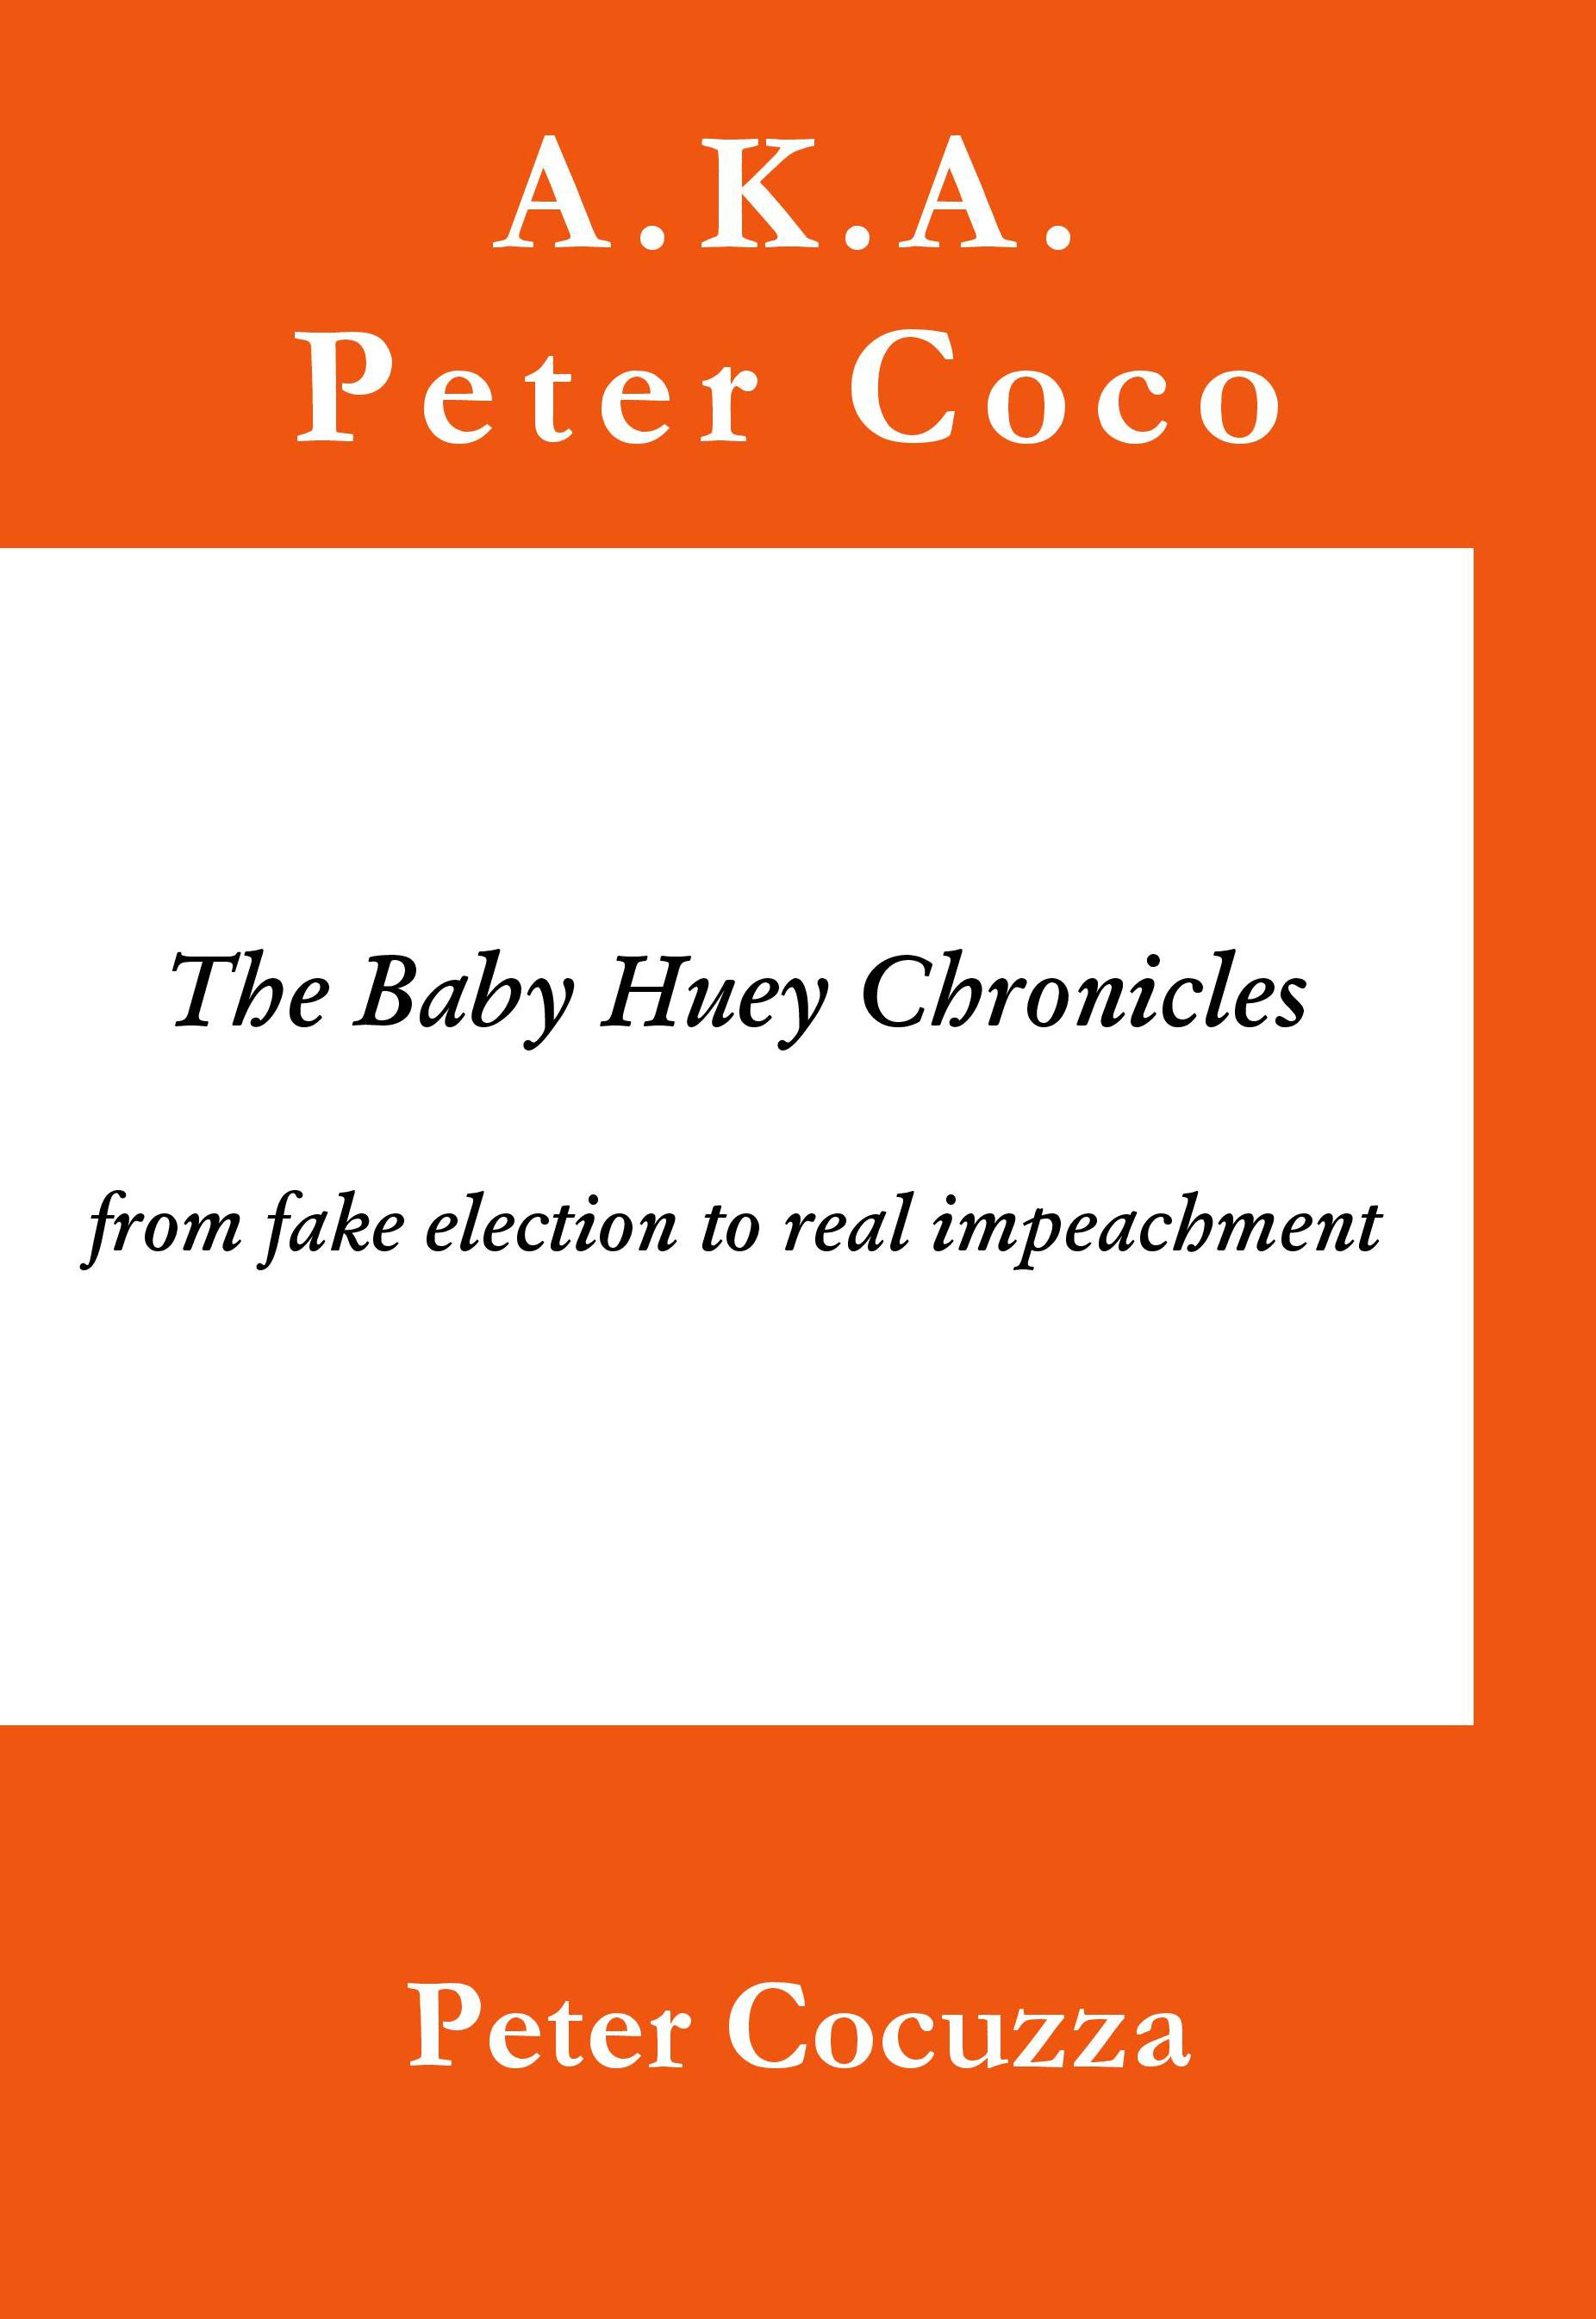 The Baby Huey Chronicles from fake election to real impeachment